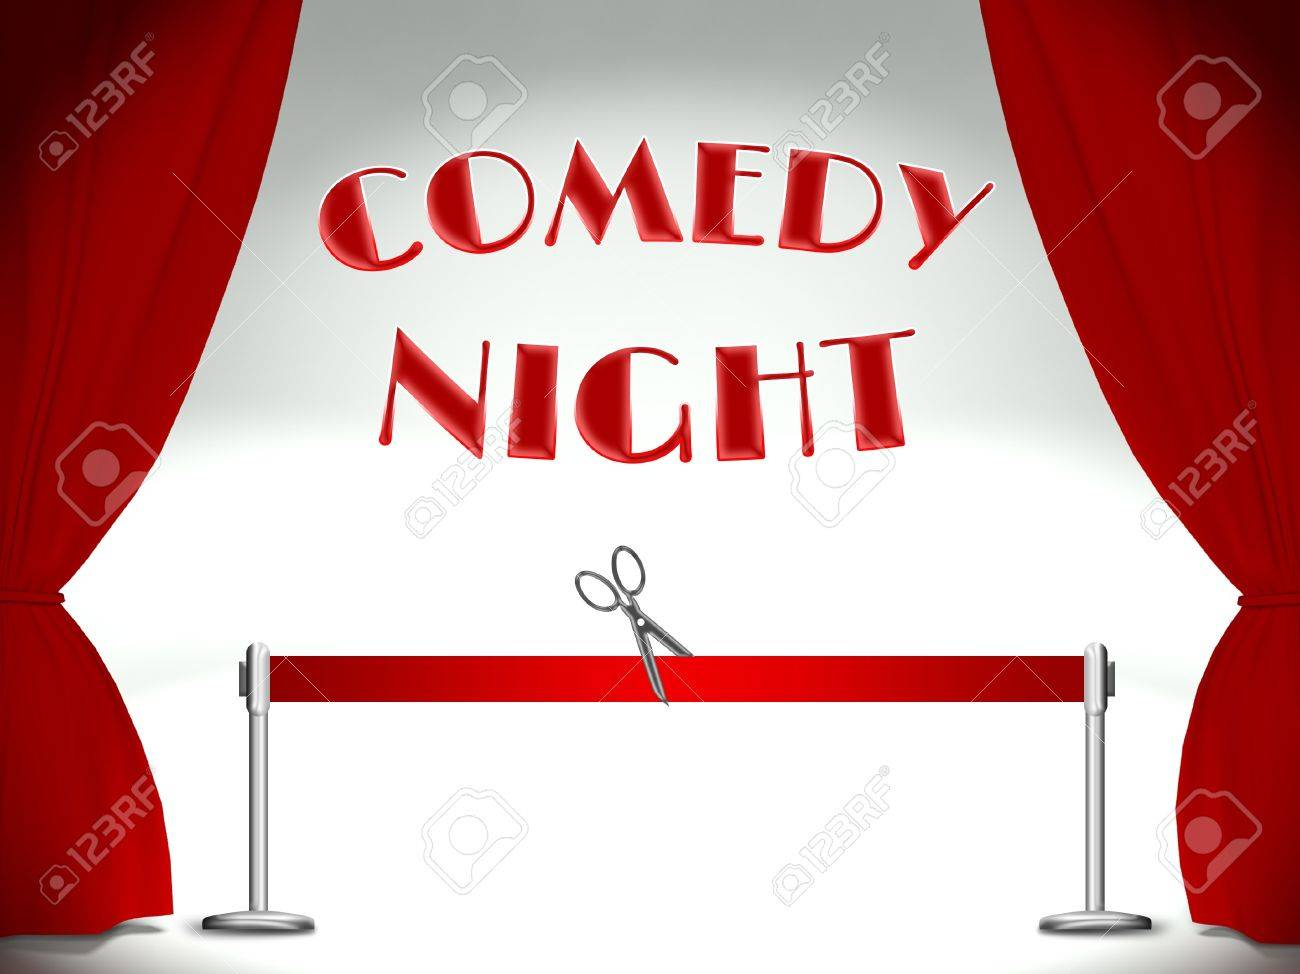 Comedy night on stage, red ribbon and scissors Stock Photo - 25316987